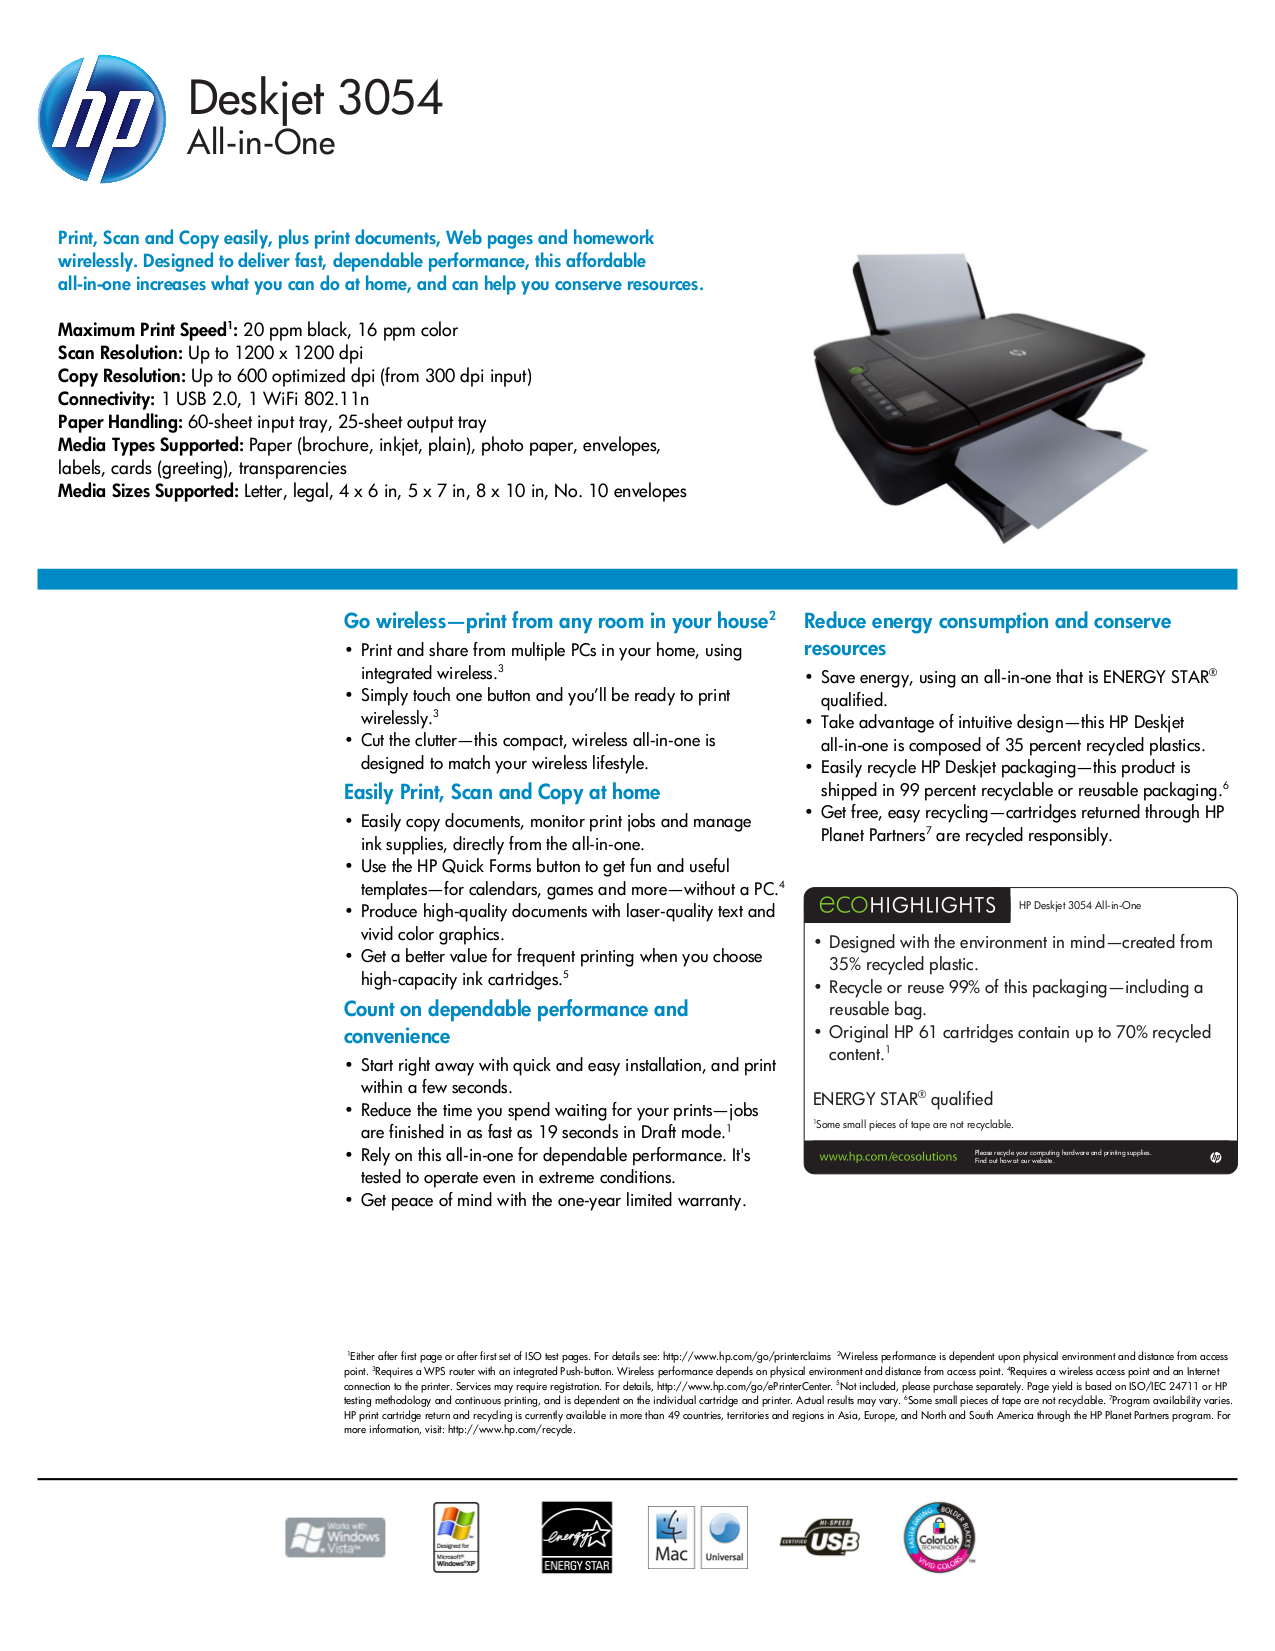 what is device documentation for hp printers